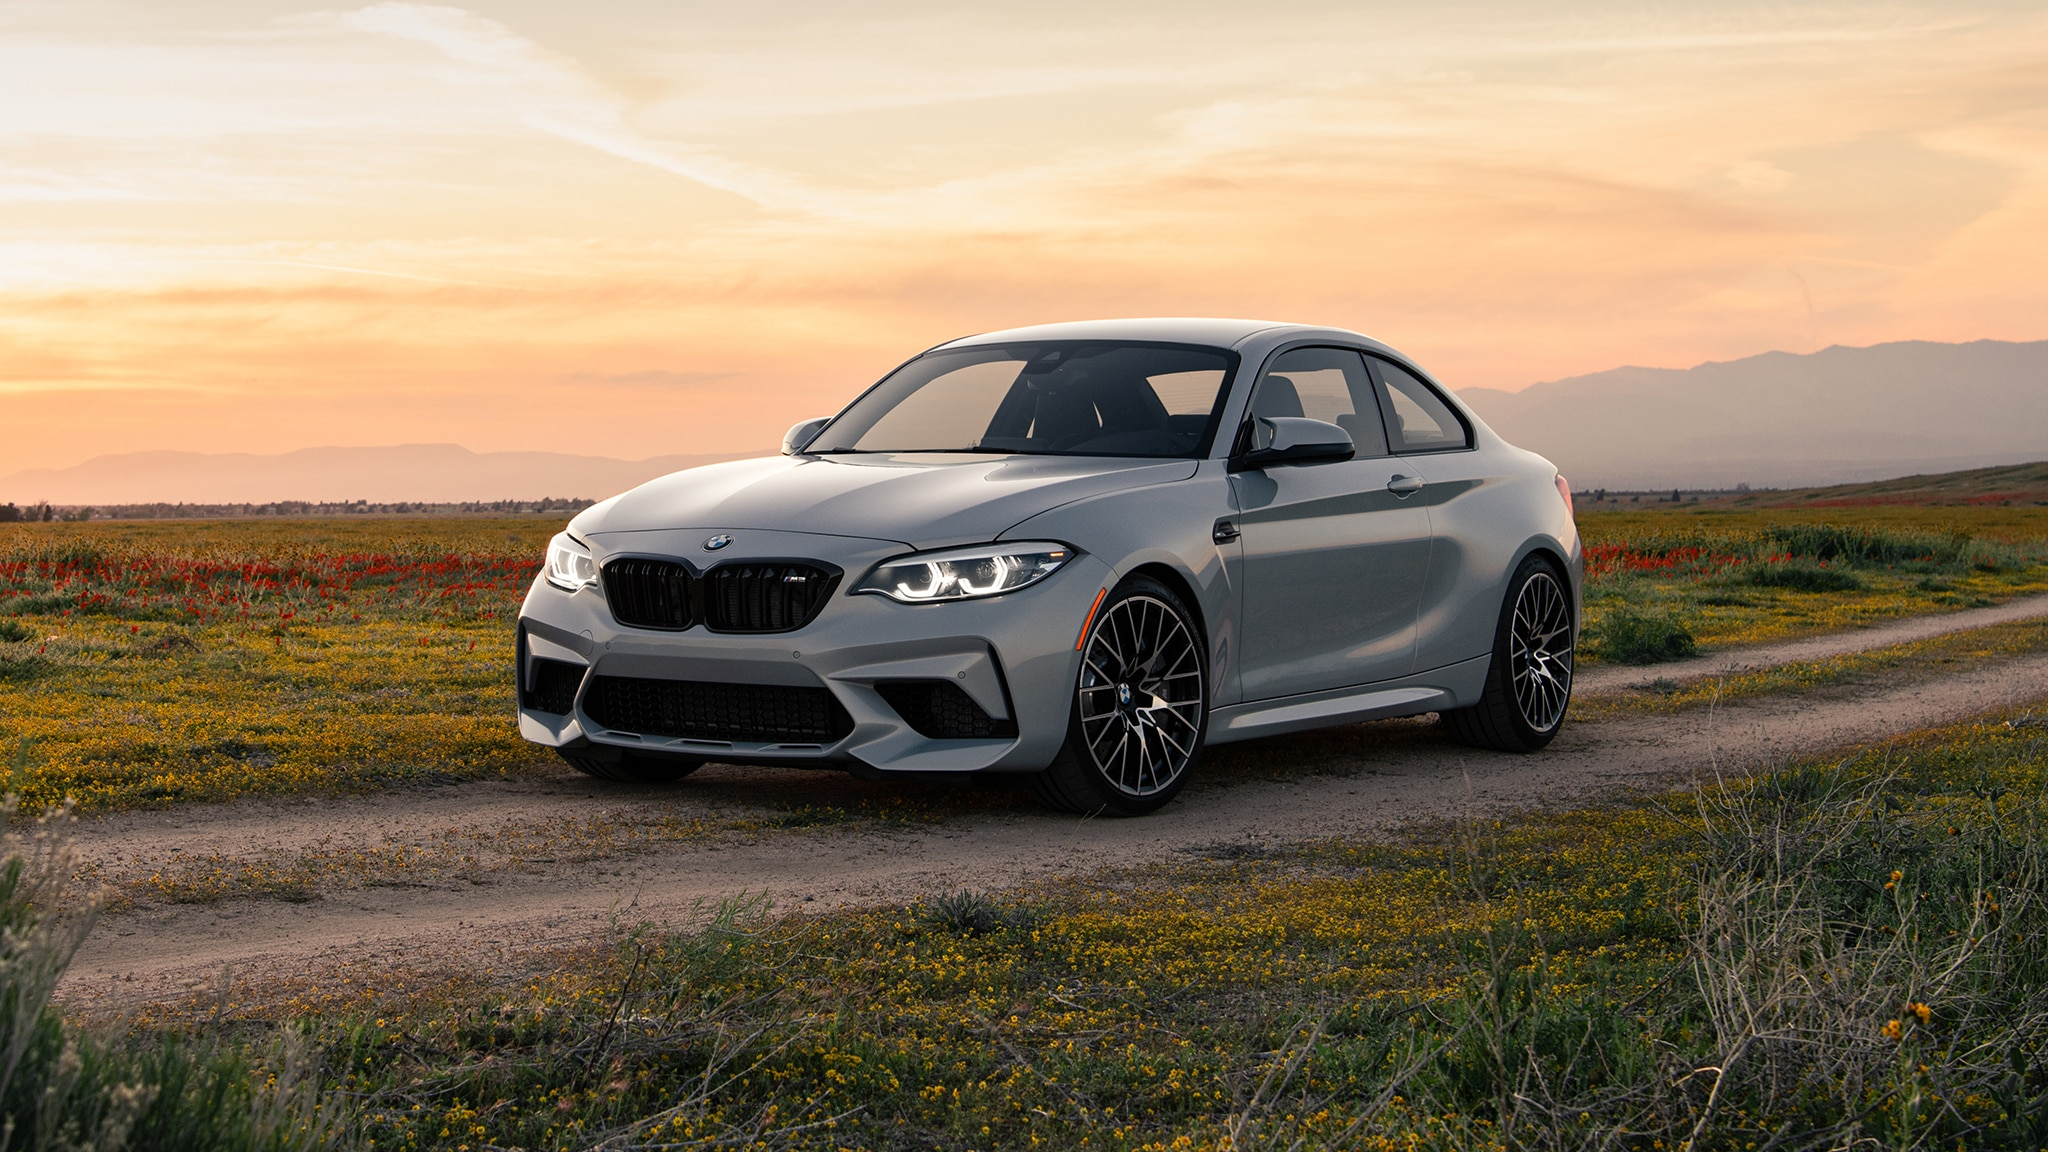 The Bmw M2 Competition Is An Excellent Daily Sports Car